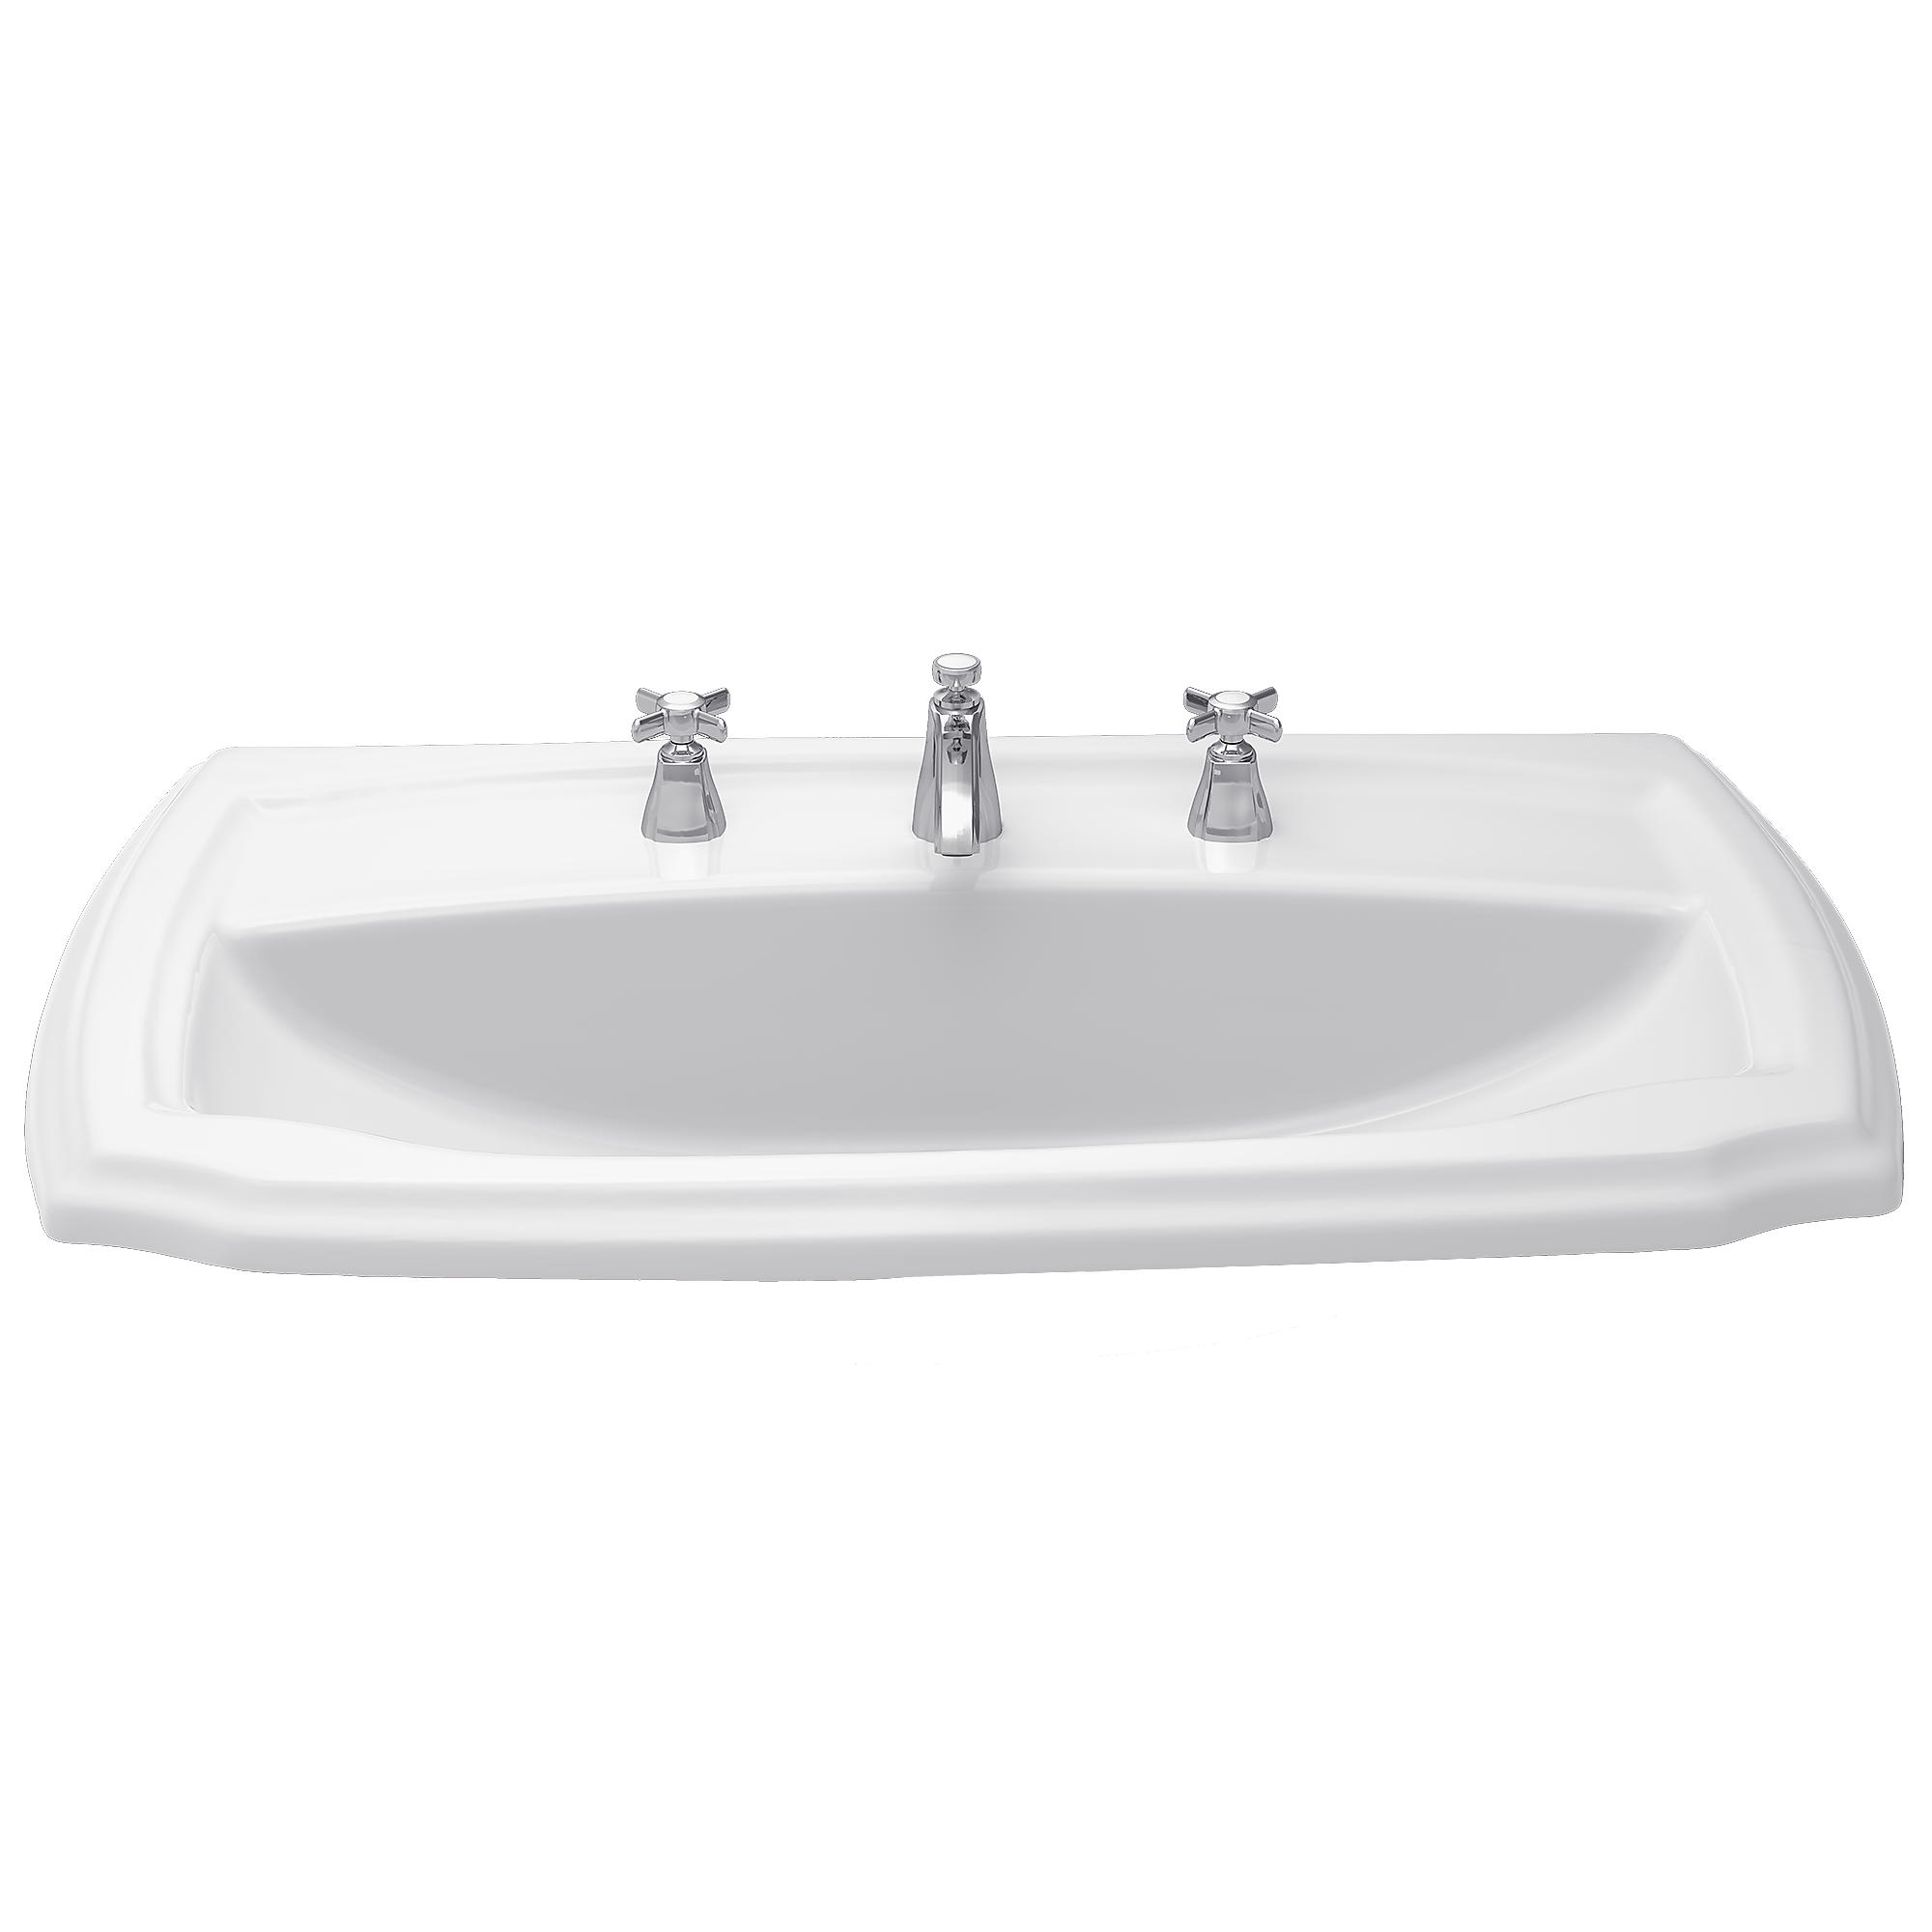 Lt971 11 guinevere  self rimming lavatory 0